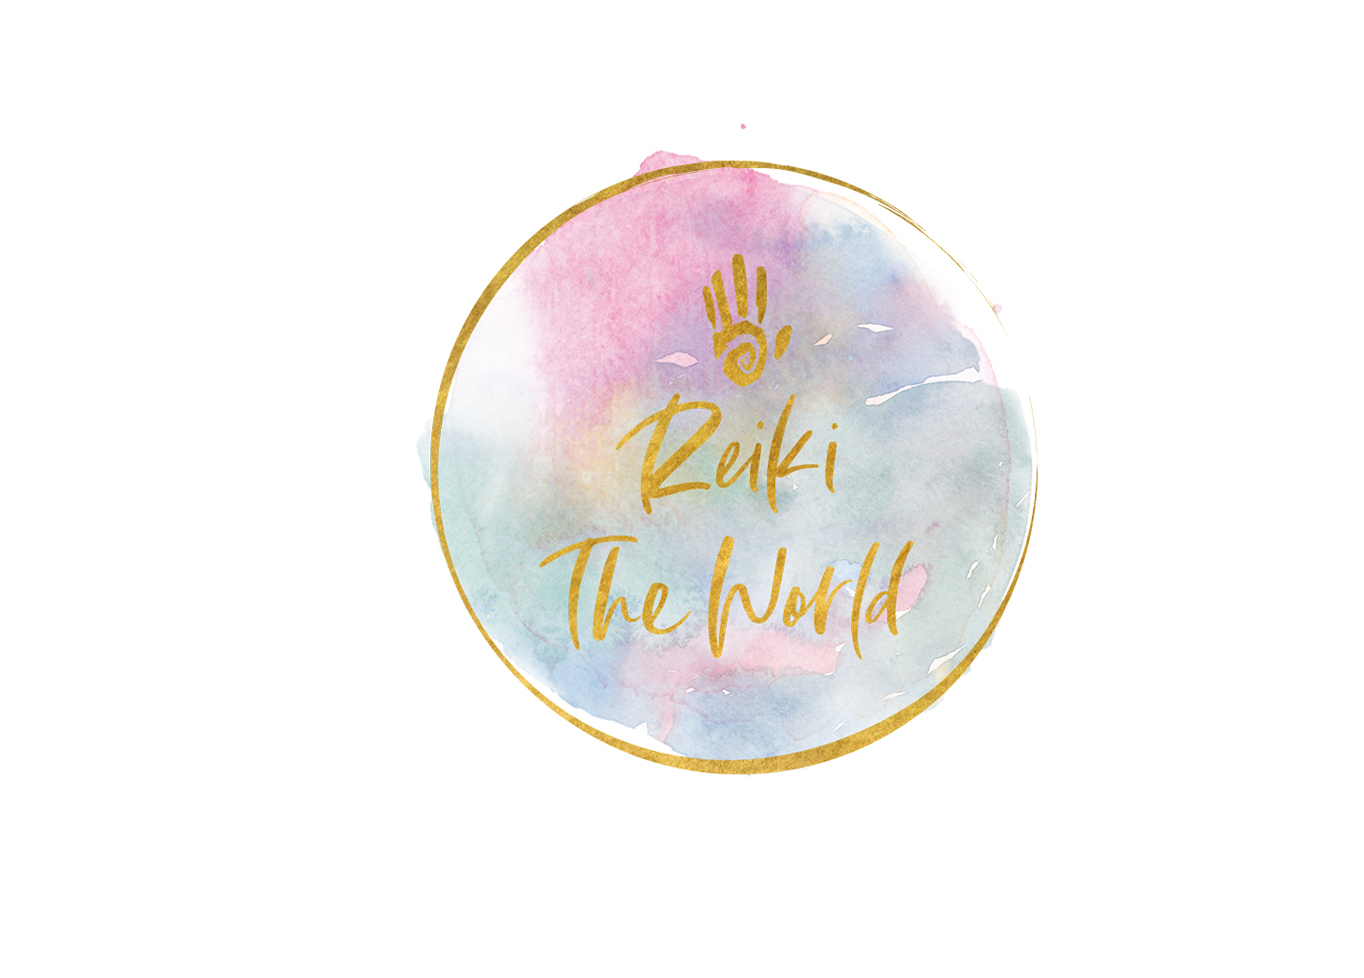 Reiki The World